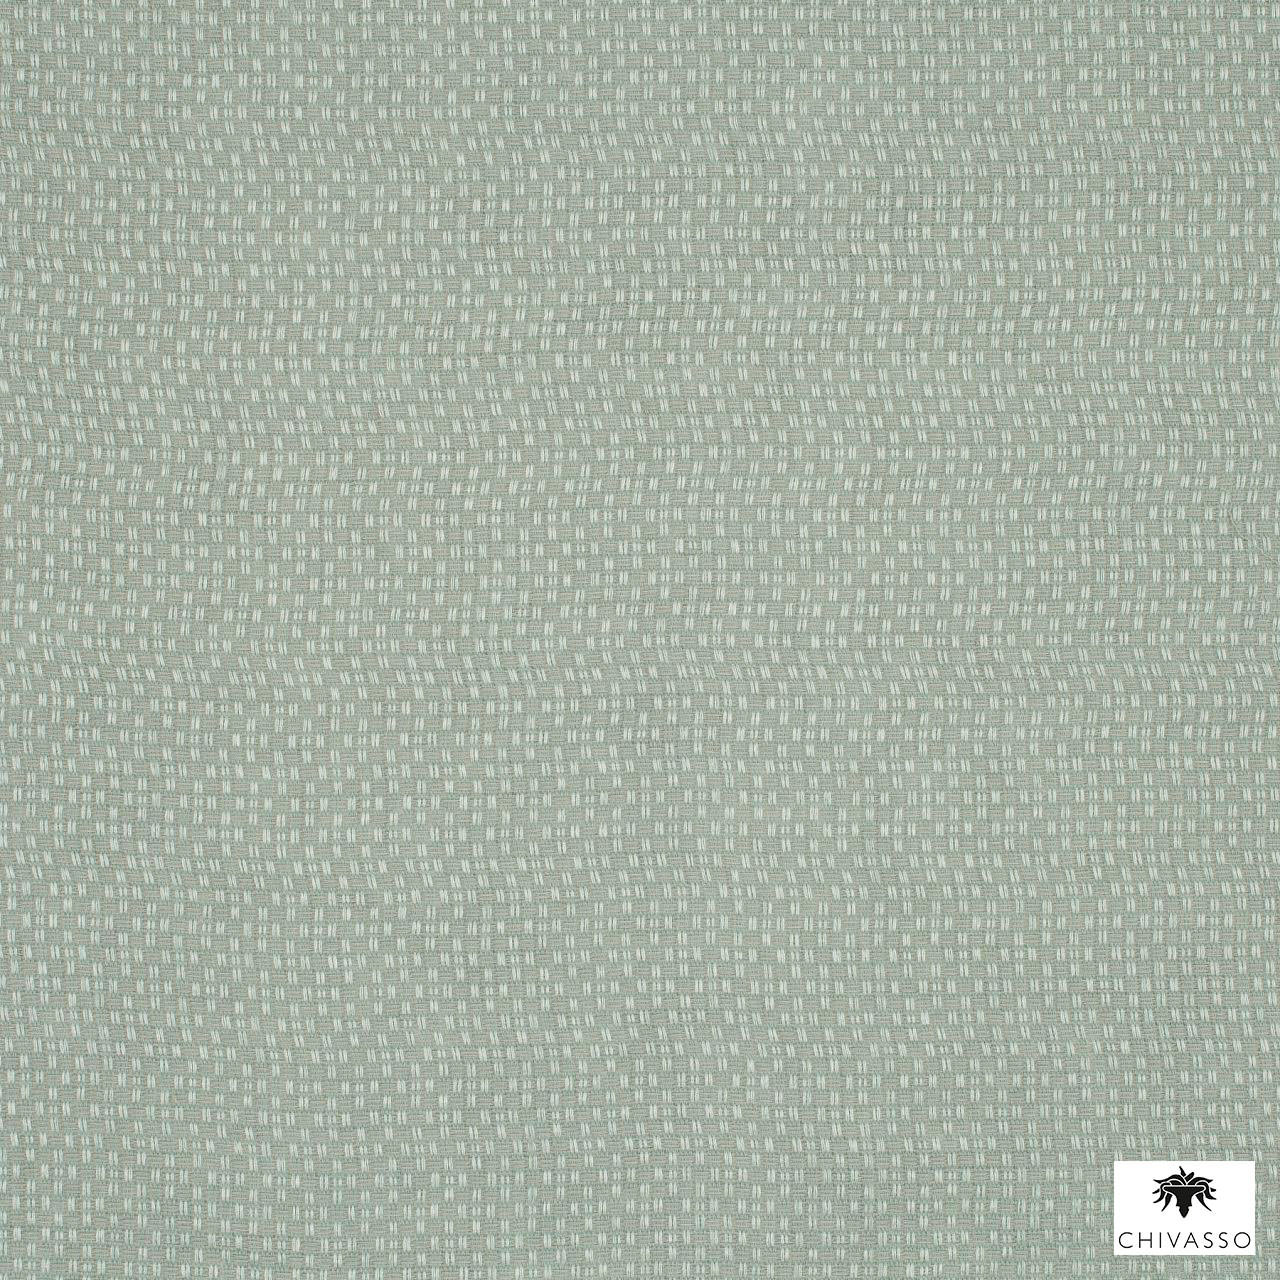 Chivasso - Vintage Star - Ch2774-080  | Curtain Fabric - Green, Plain, Fibre Blends, Domestic Use, Textured Weave, Plain - Textured Weave, Railroaded, Wide Width